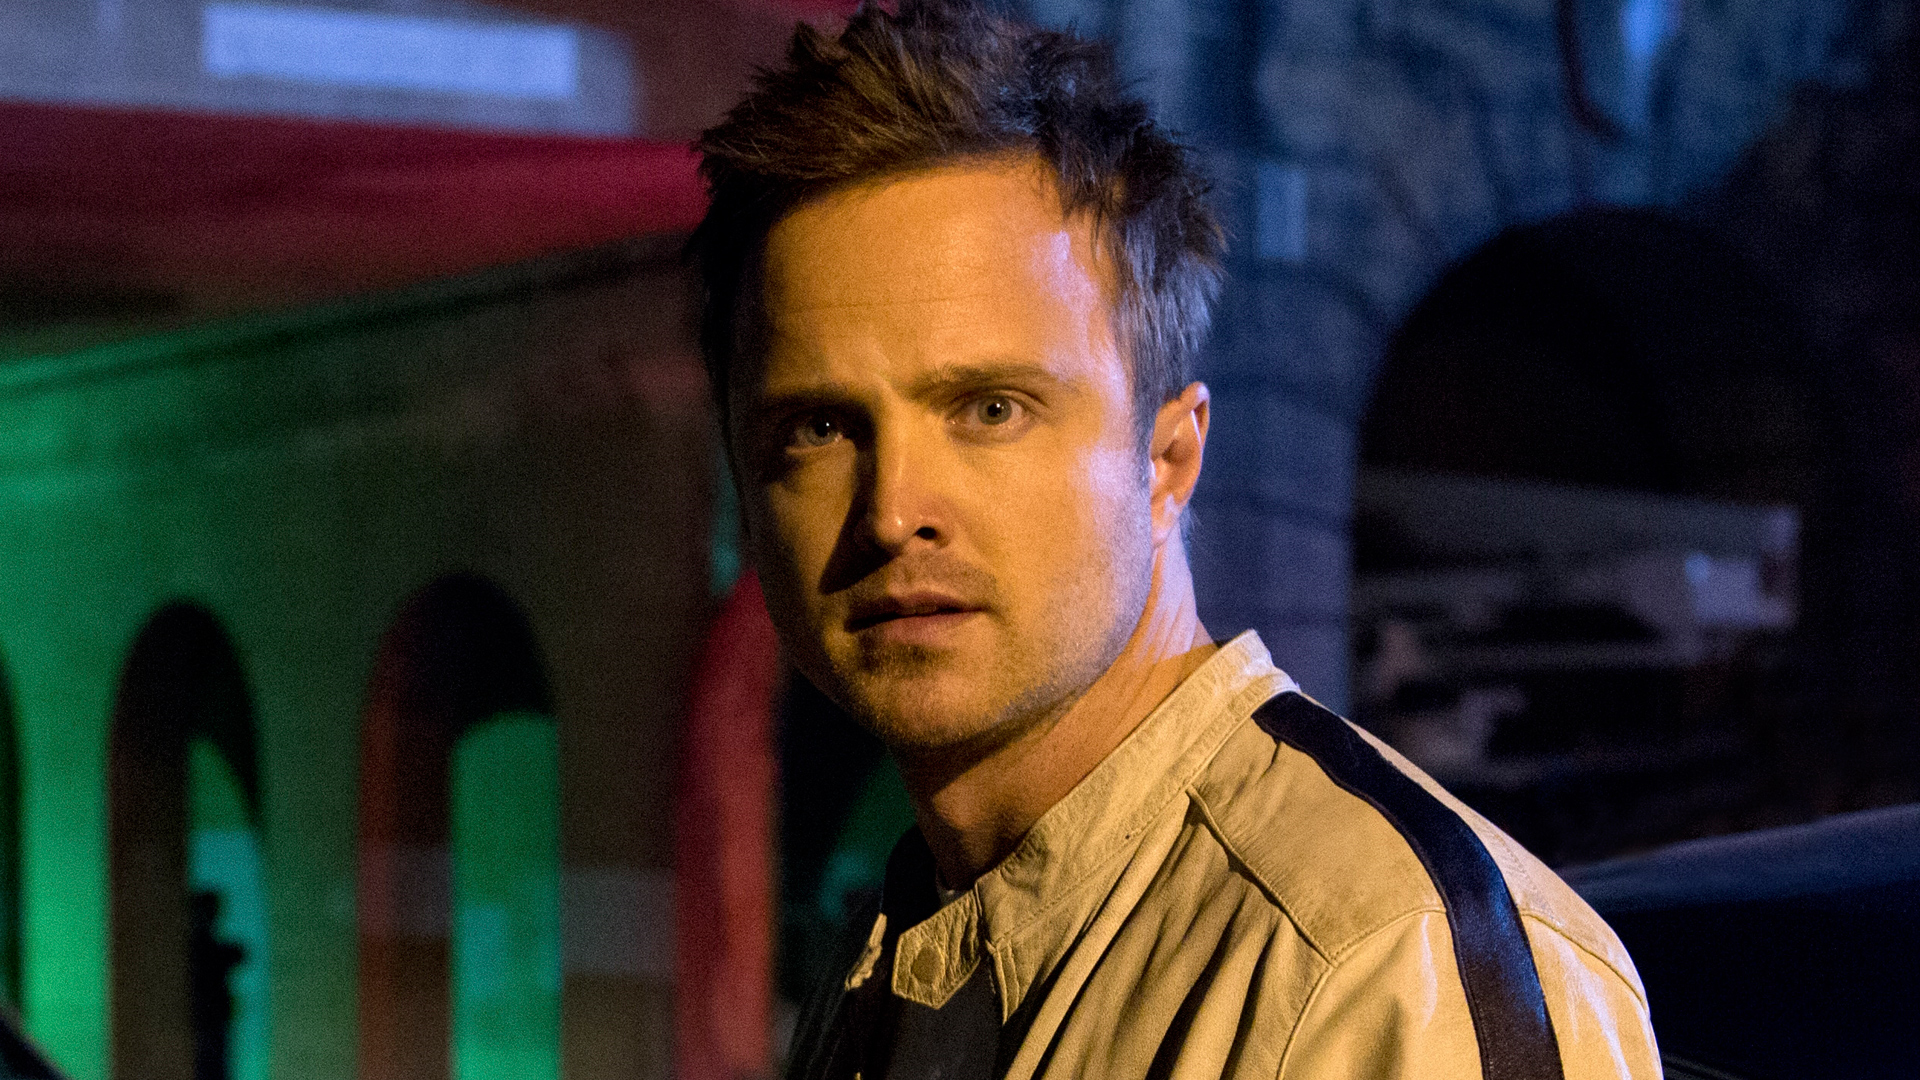 Aaron Paul Need for Speed 0p Wallpaper HD